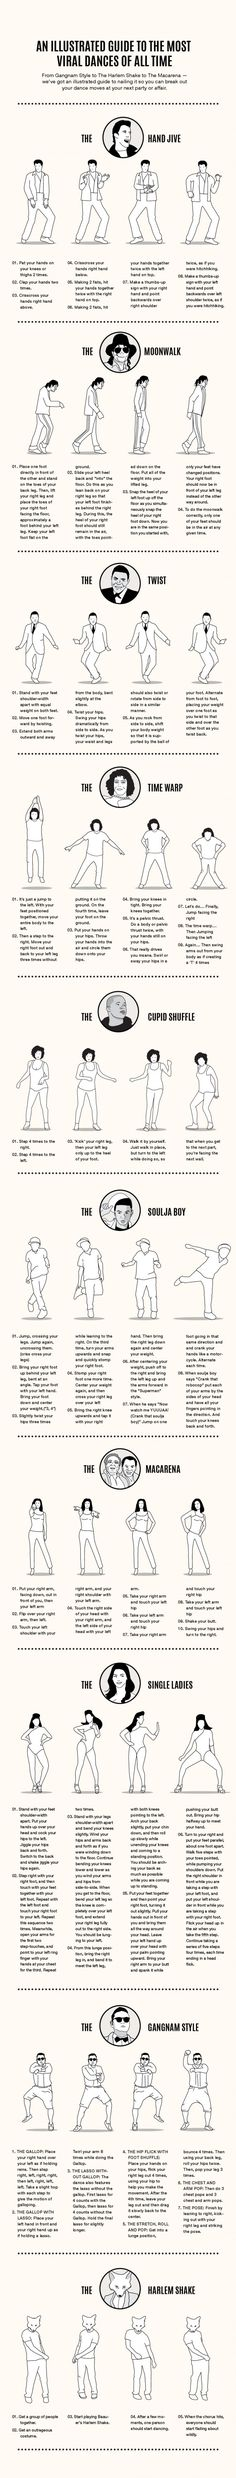 Master these dances with one simple chart